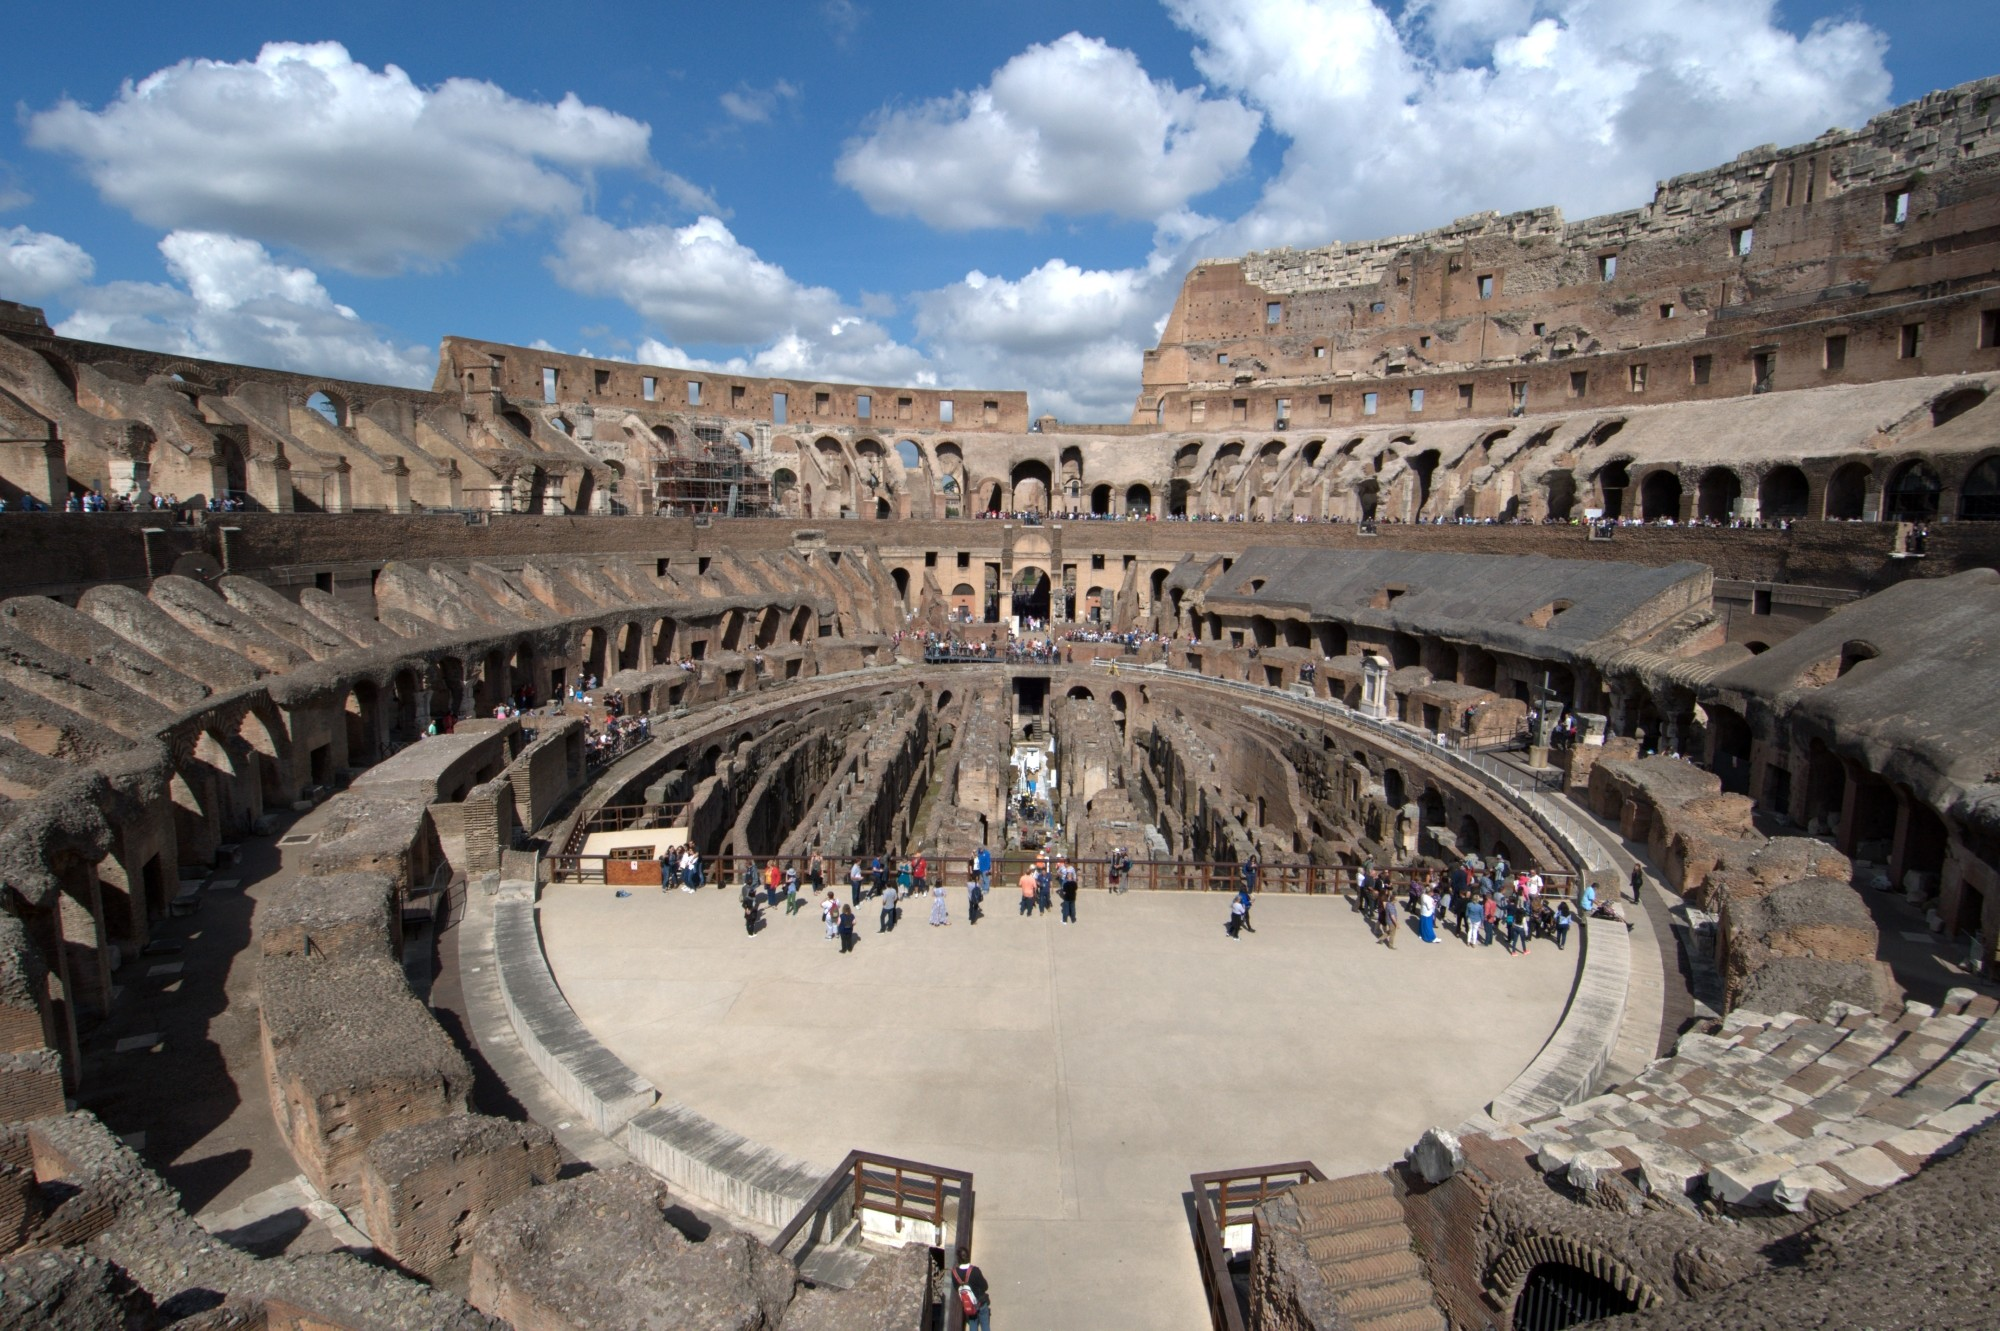 Flavian Amphitheater in Rome